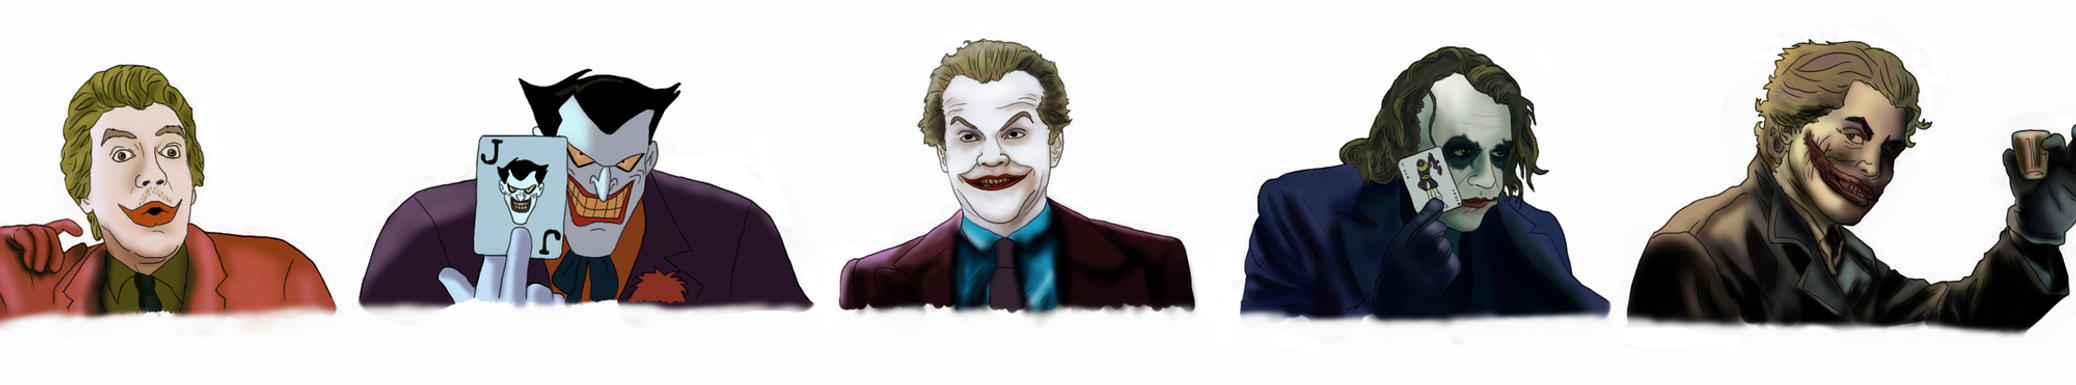 How did the Joker get his scars?